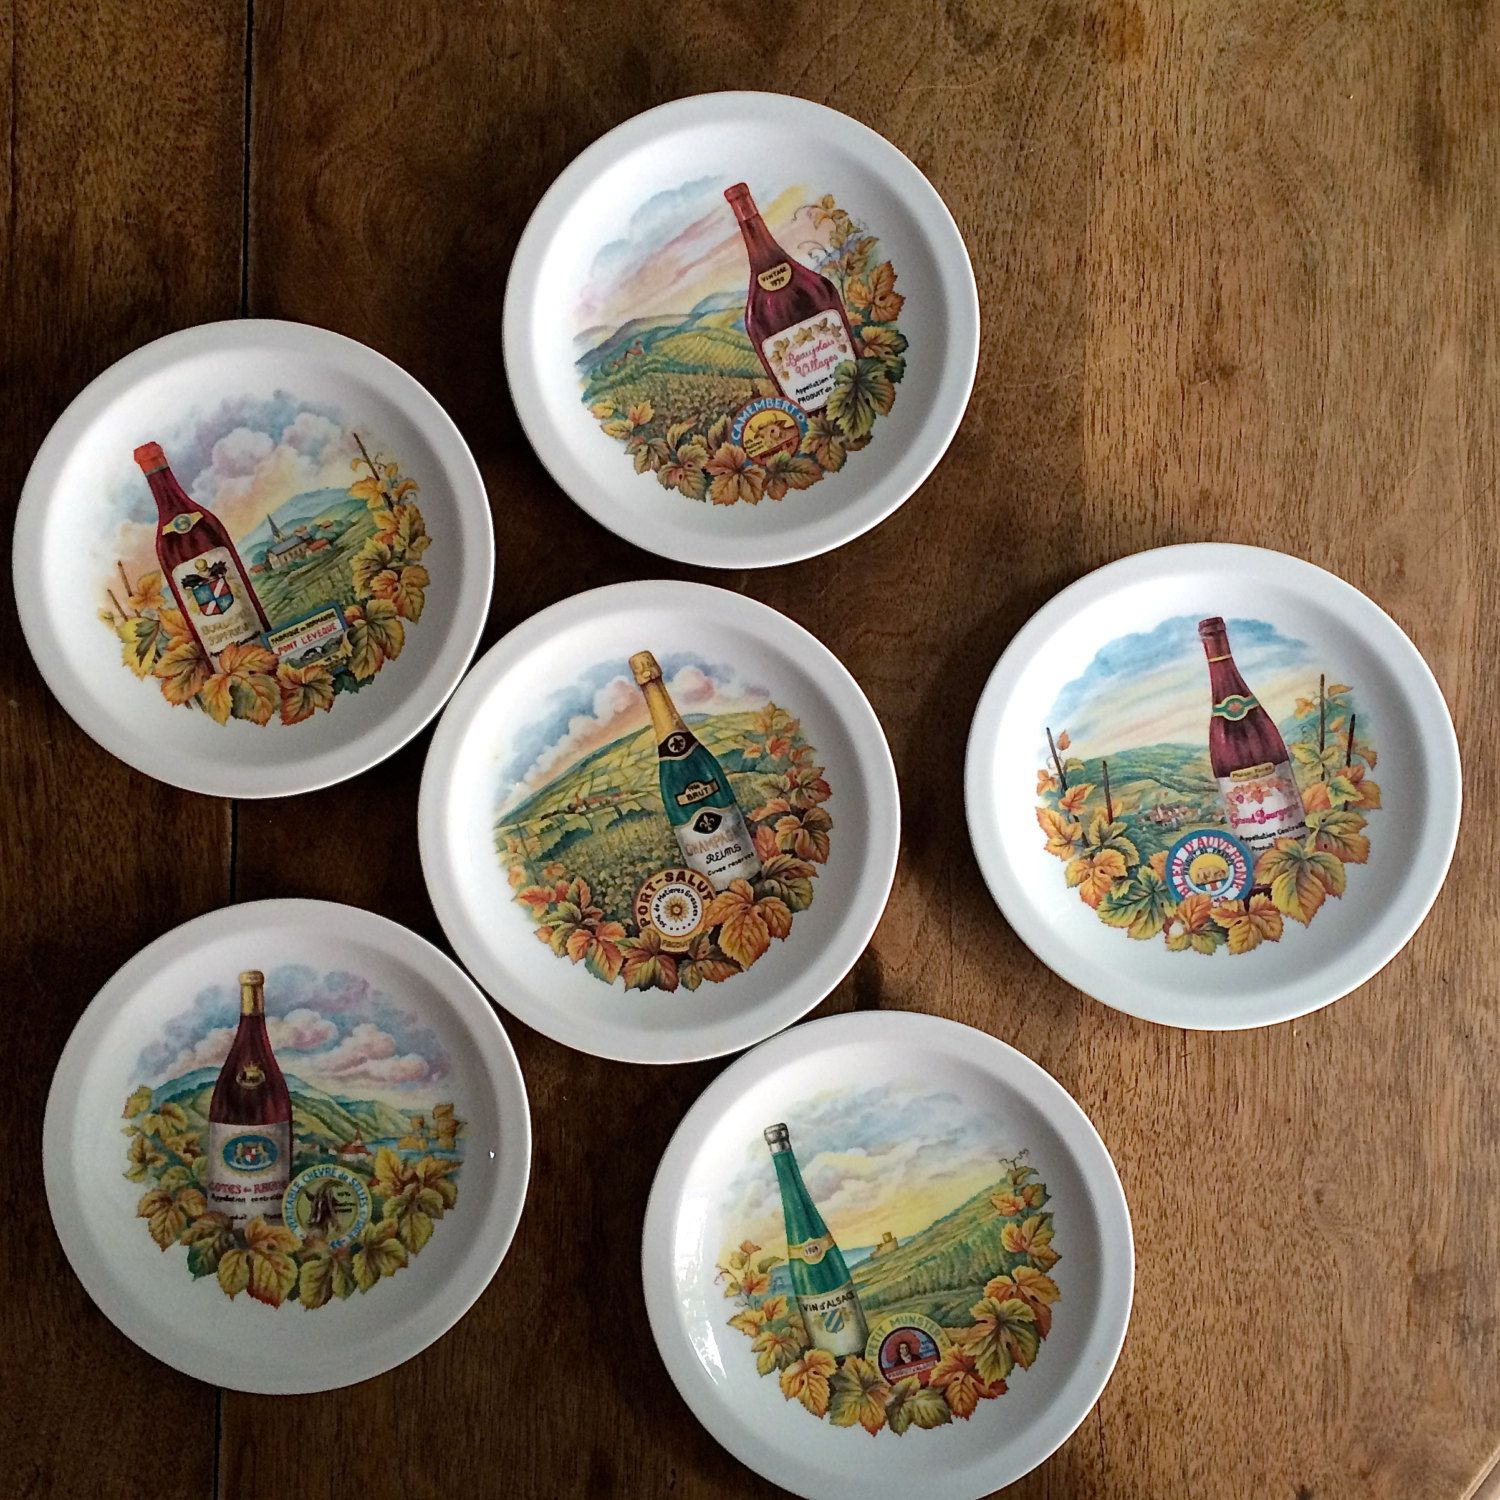 Vintage Set of 6 CHEESE PLATES Ceramic Majolica PORCELAIN with Wine and cheese Camembert Bordeaux Bourgogne & Vintage Set 6 CHEESE PLATES Ceramic Majolica Porcelain Wine cheese ...